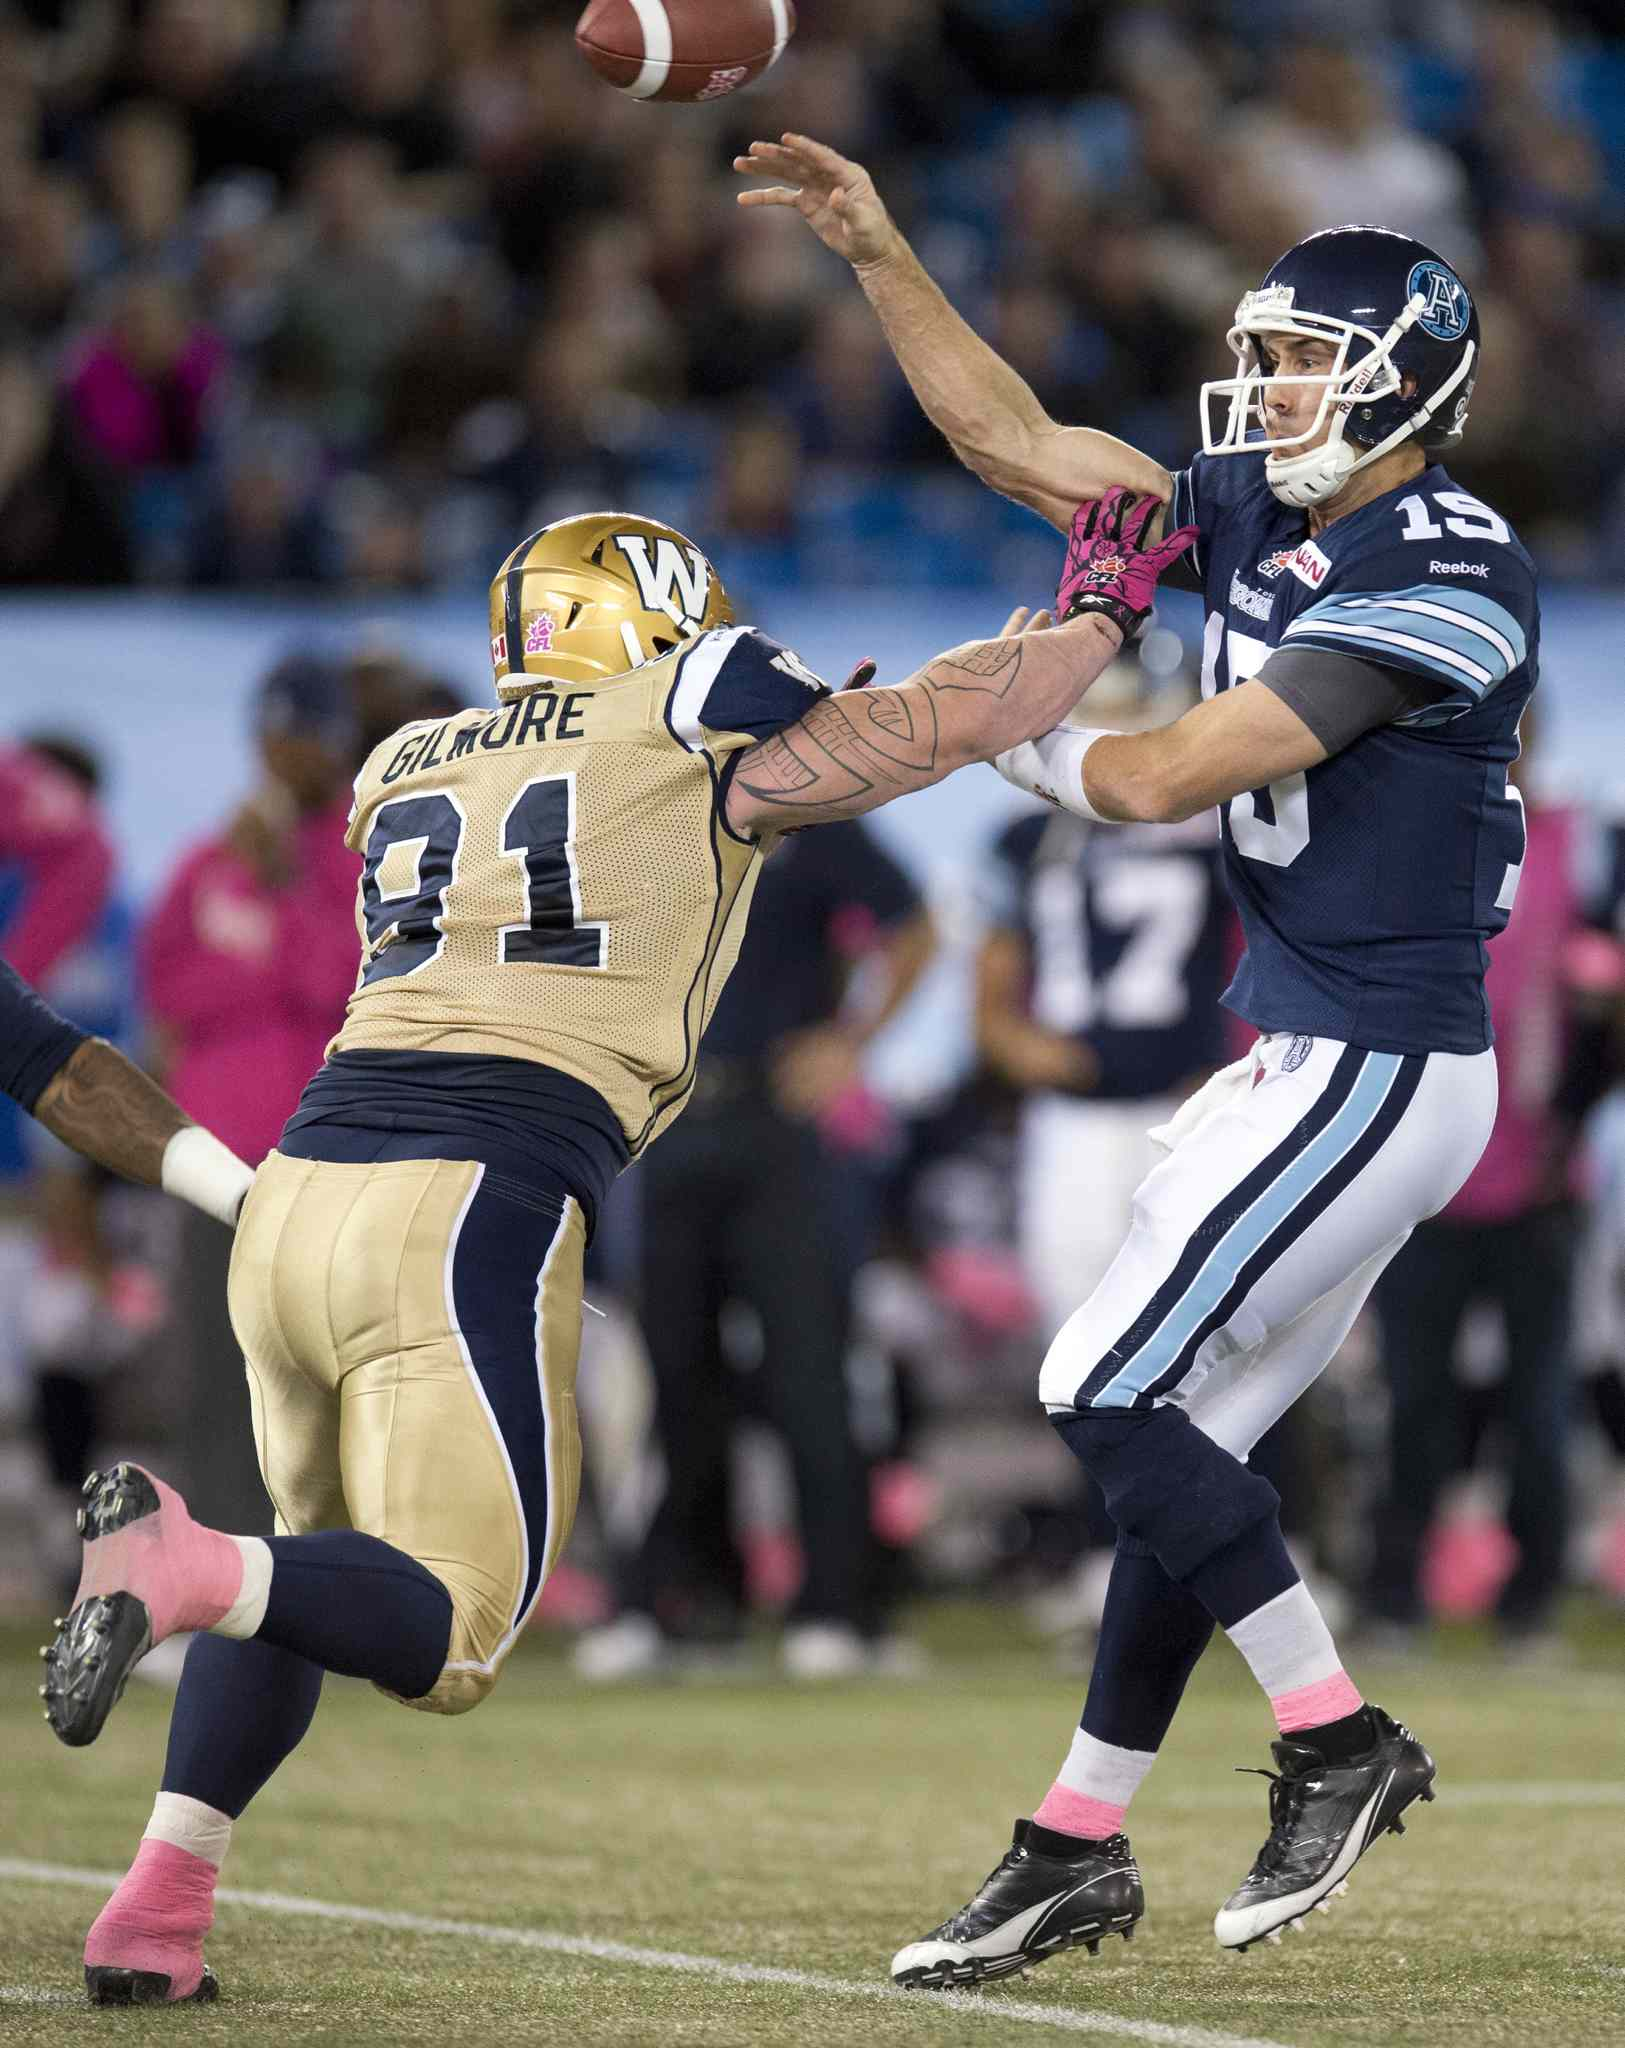 Toronto Argonauts quarterback Ricky Ray (right) dumps off a pass under pressure from Winnipeg Blue Bombers defensive tackle JT Gilmore during the first half.